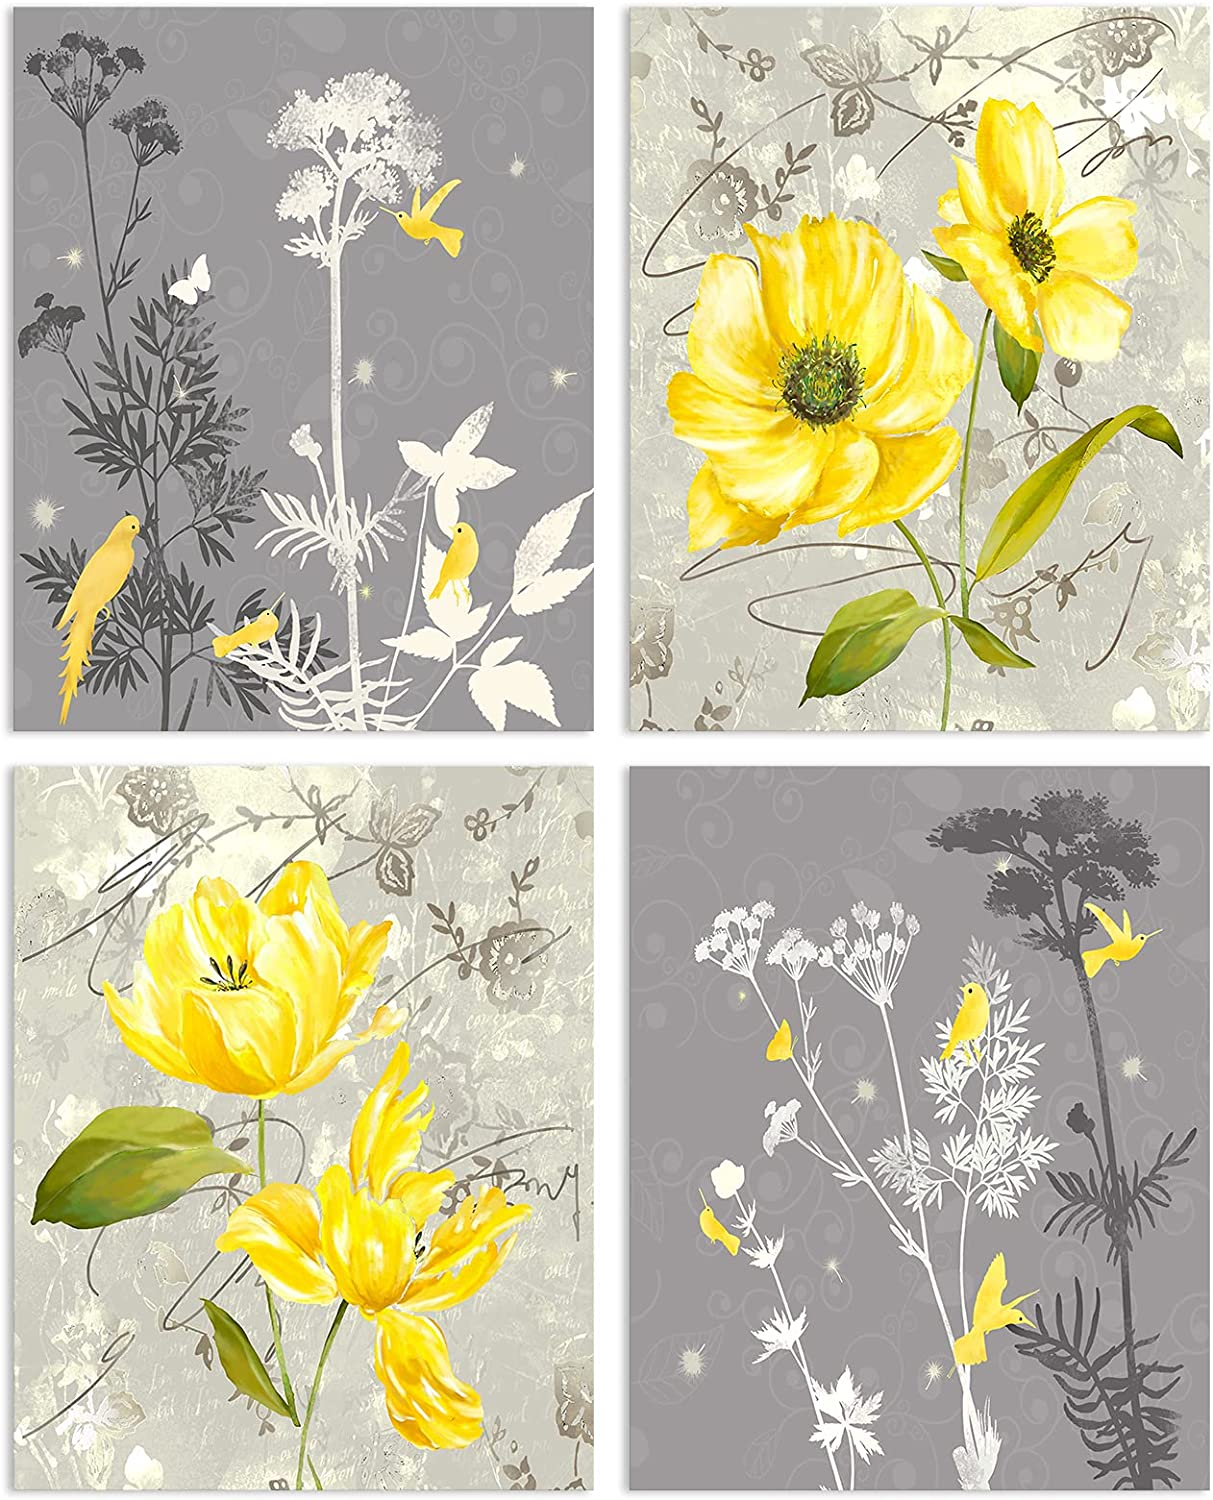 """VIIVEI Yellow and Grey Flowers Wall Art Painting Set of 4 (8""""X10"""", Unframed) Grey & Yellow Poster Bird on Blooming Flowers Painting for Bathroom Bedroom Room Office Wall Modern Home Decor"""